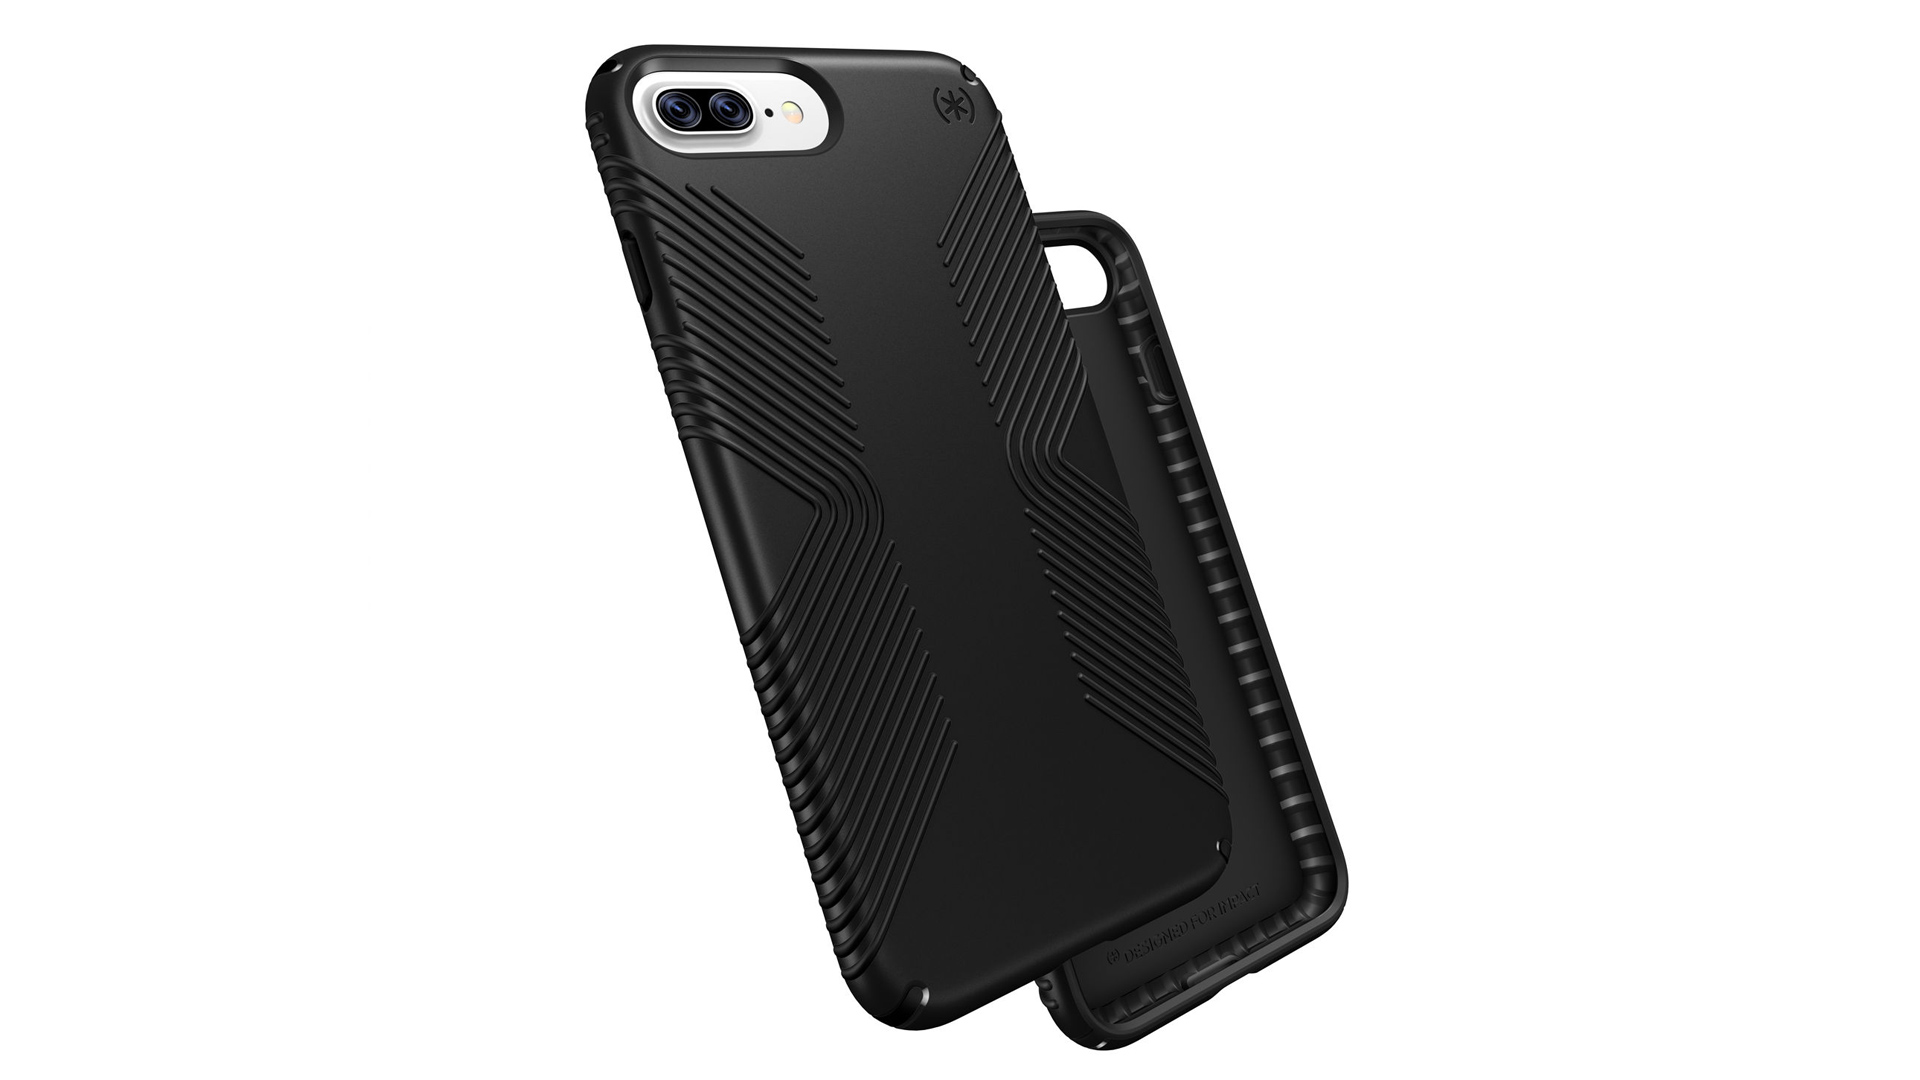 o5eXaHgfeyd3ZT3YPRz9JP - The best iPhone 7 Plus cases